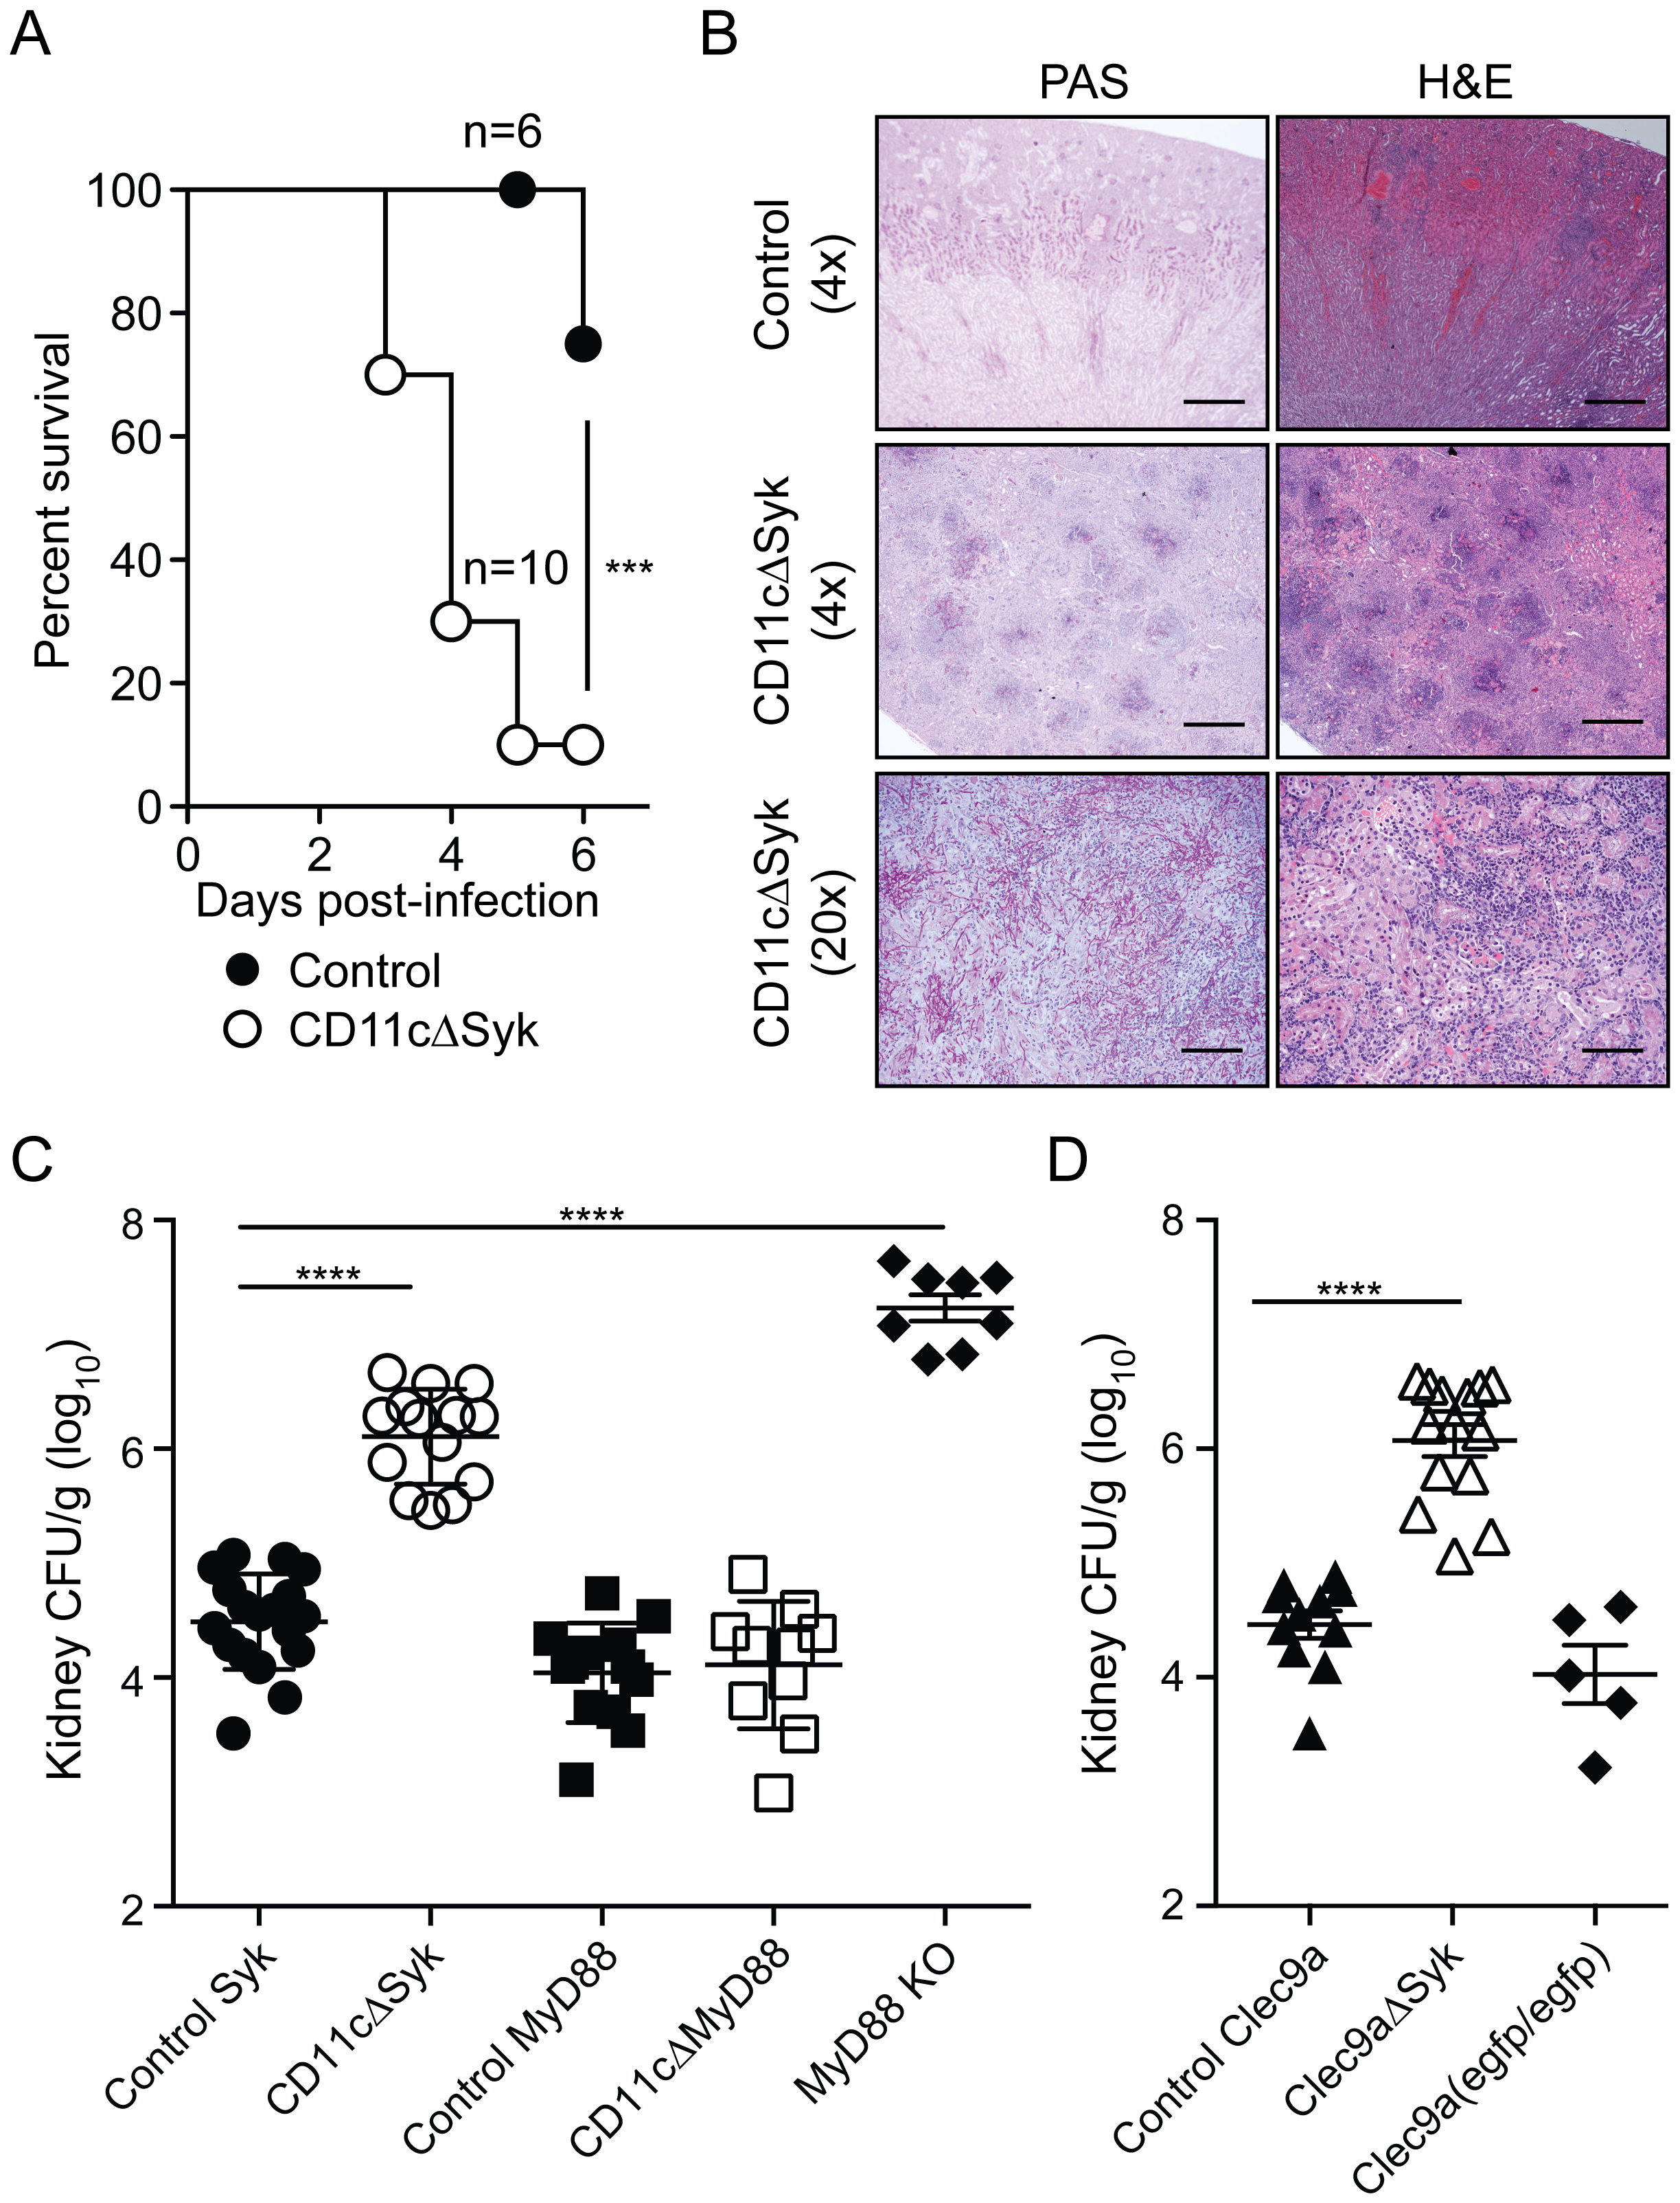 Mice with targeted deletion of Syk in CD11c<sup>+</sup> cells show increased susceptibility to systemic candidiasis.